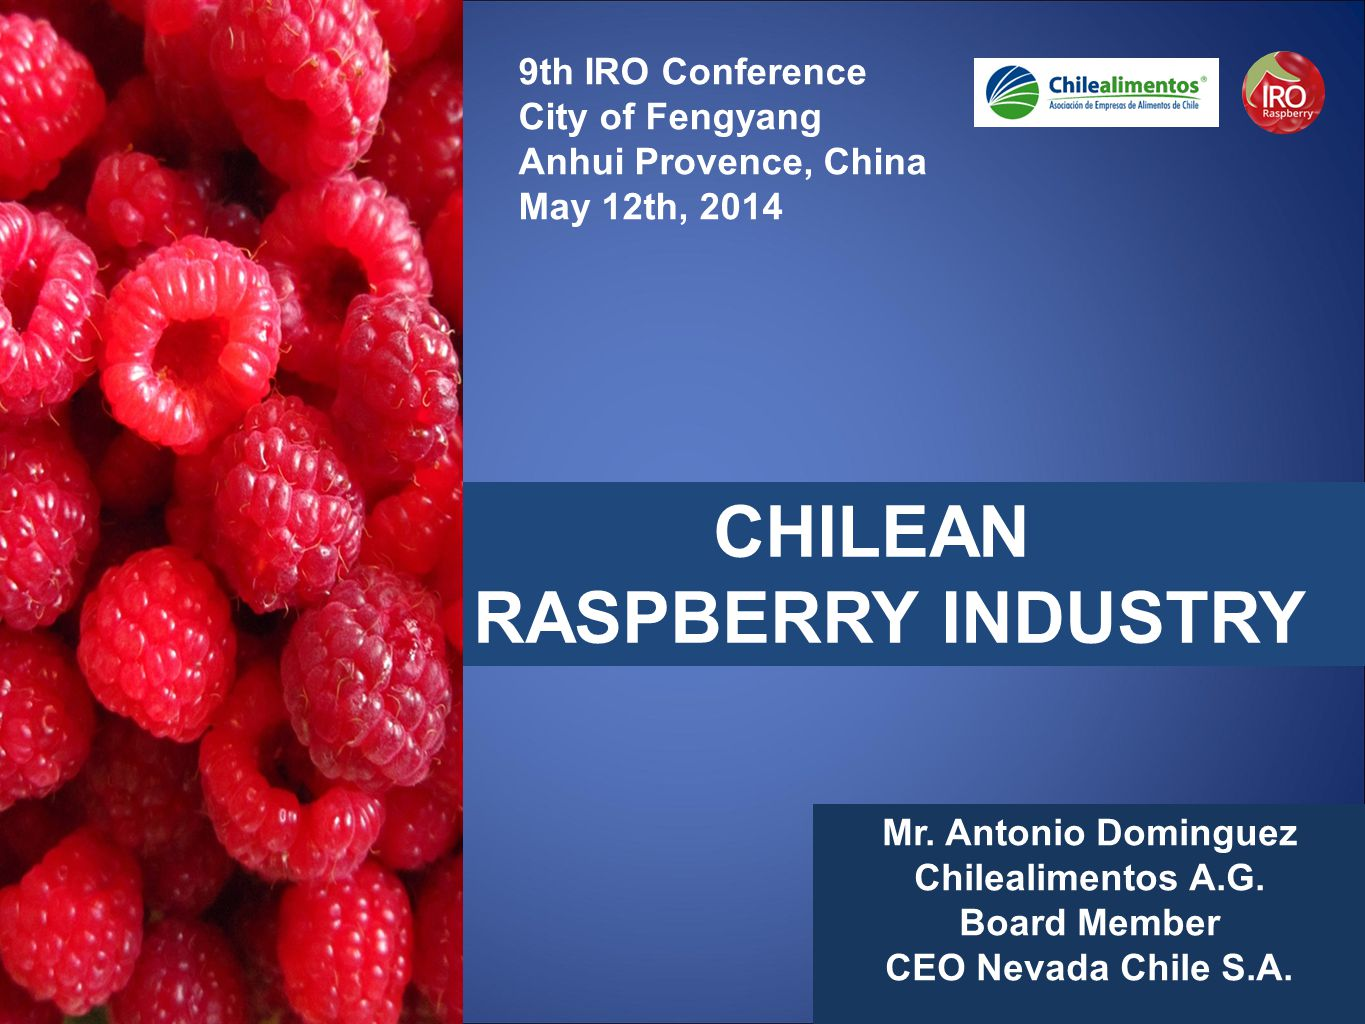 CHILEAN RASPBERRY INDUSTRY